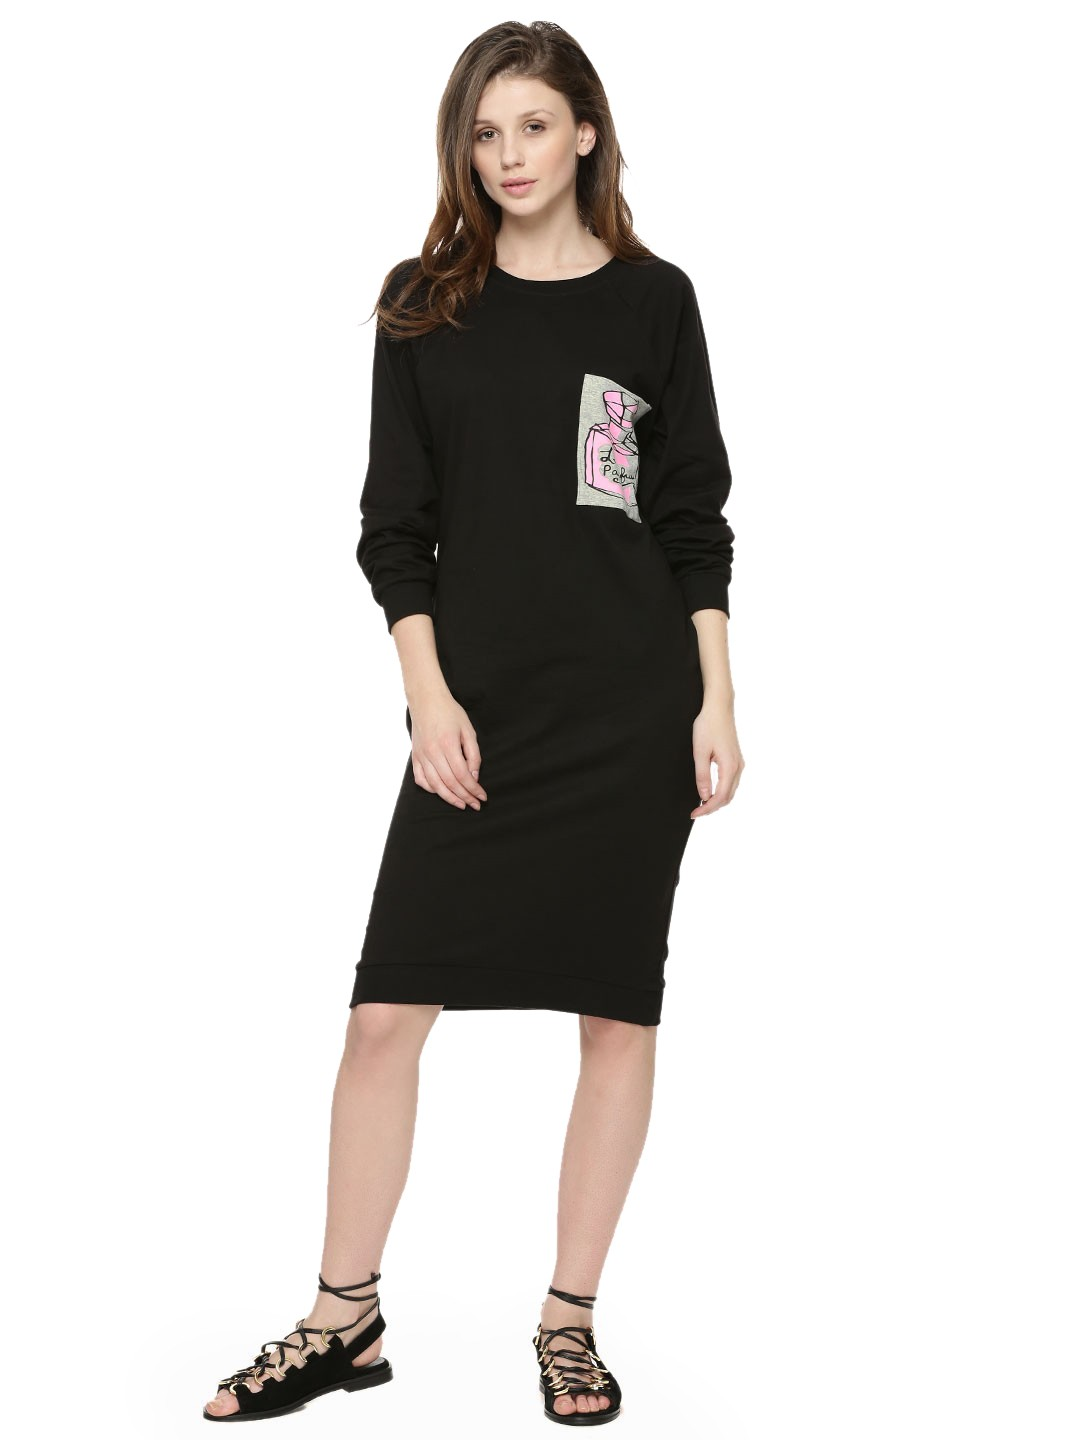 Black t shirt buy online - Spring Break Oversized T Shirt Dress